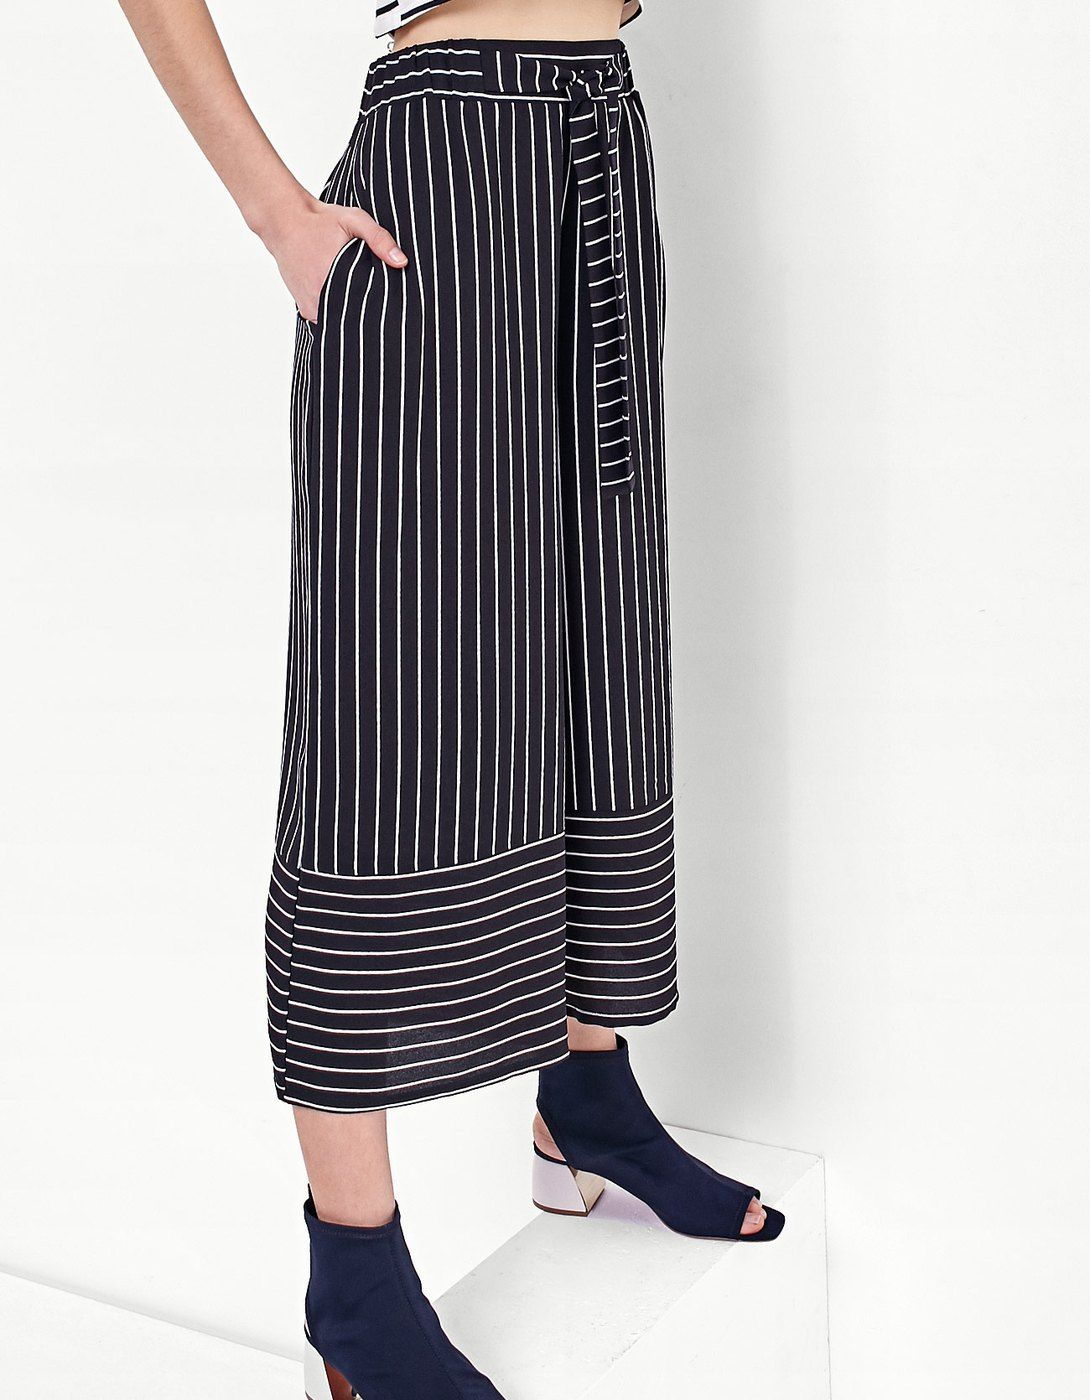 Striped Print Flowing Culottes Trousers